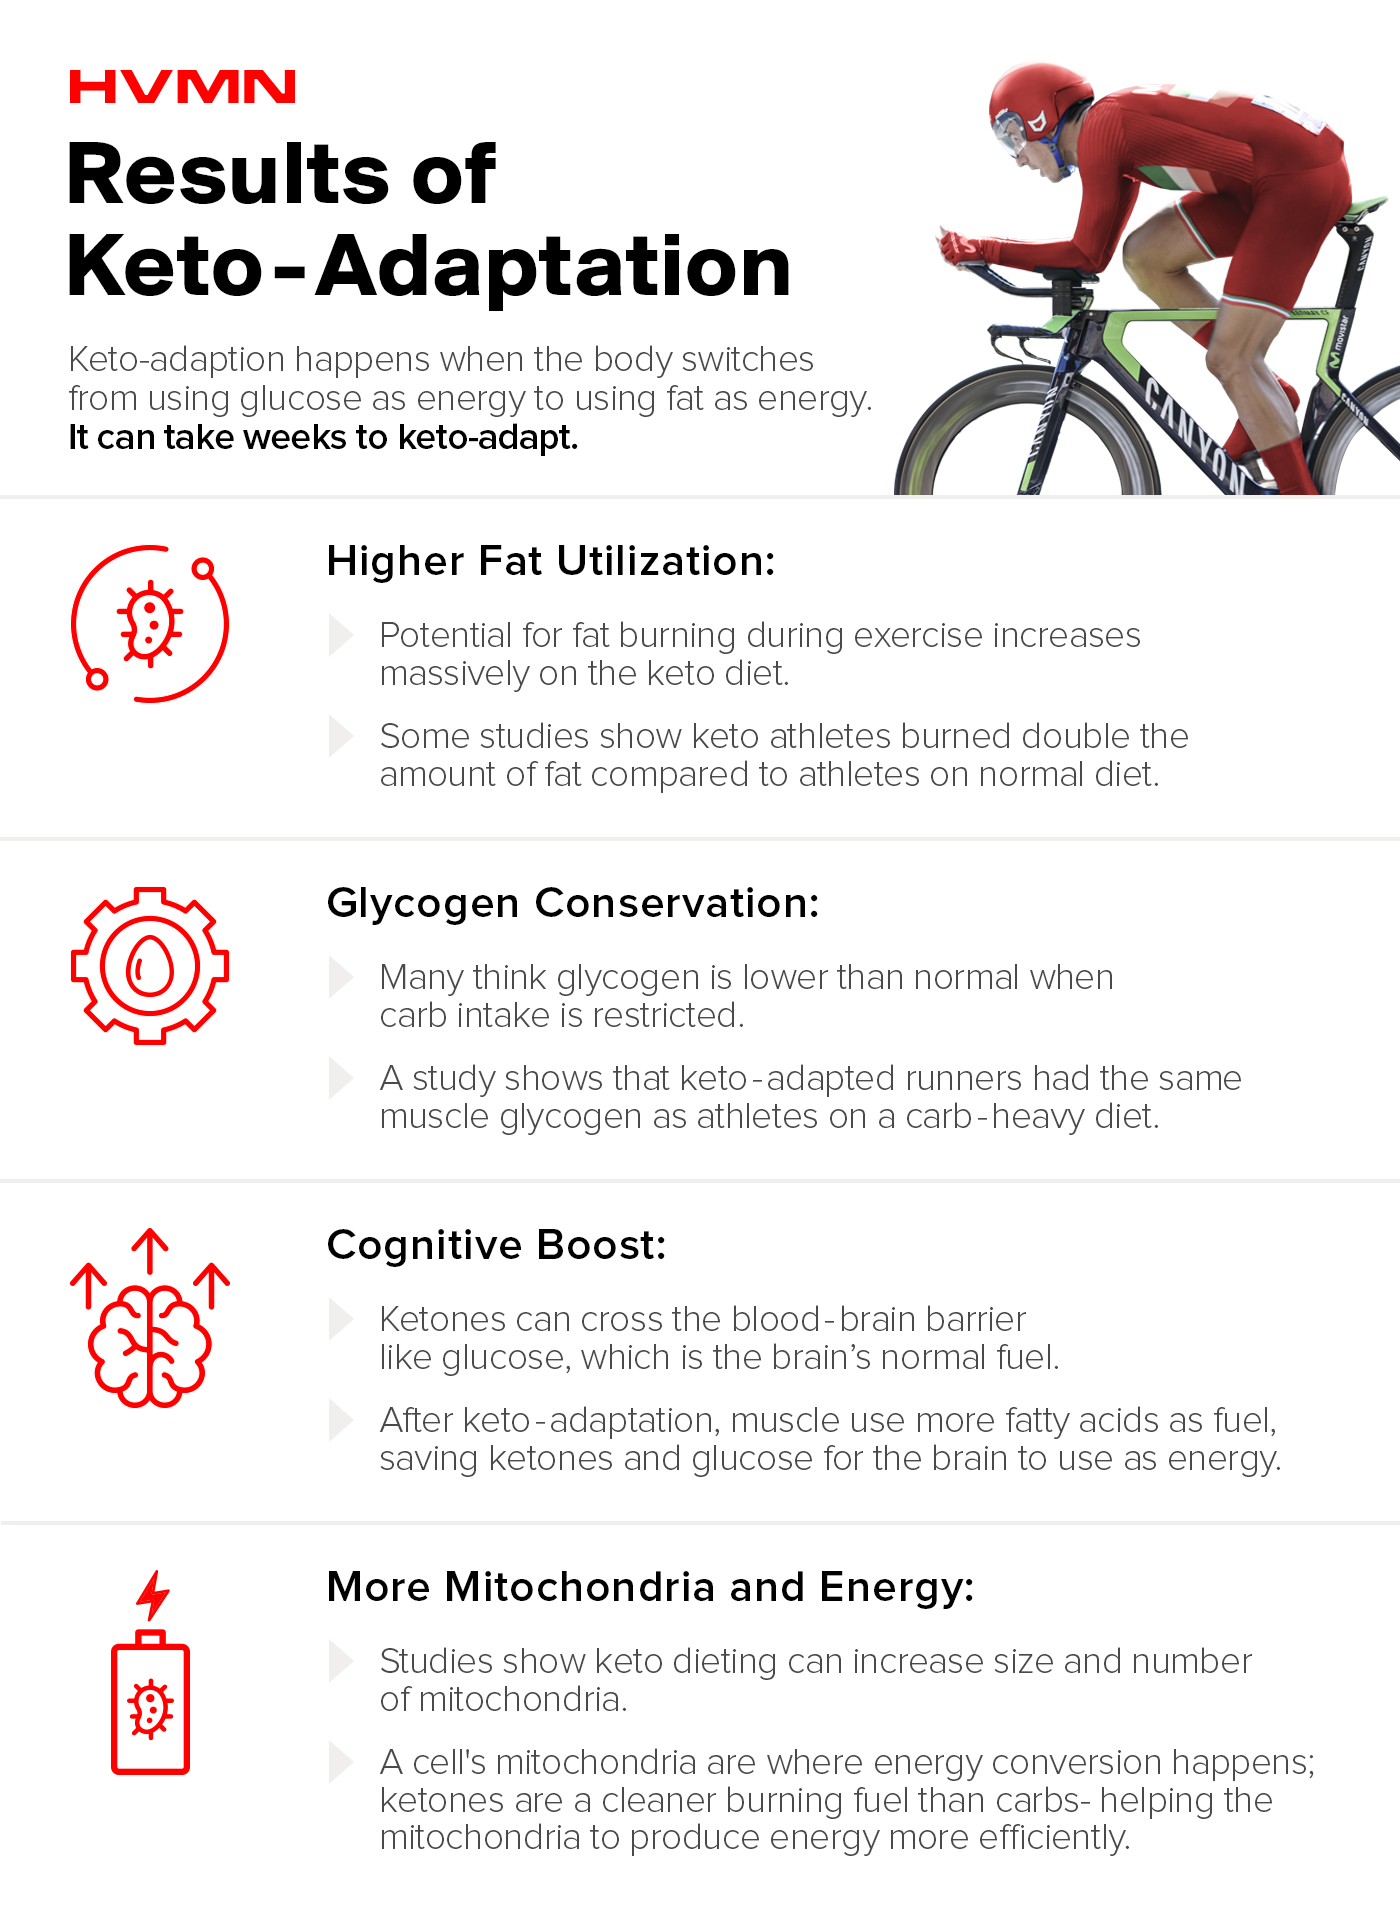 An image of a male speed cyclist, and illustrations of the different results of keto adaption